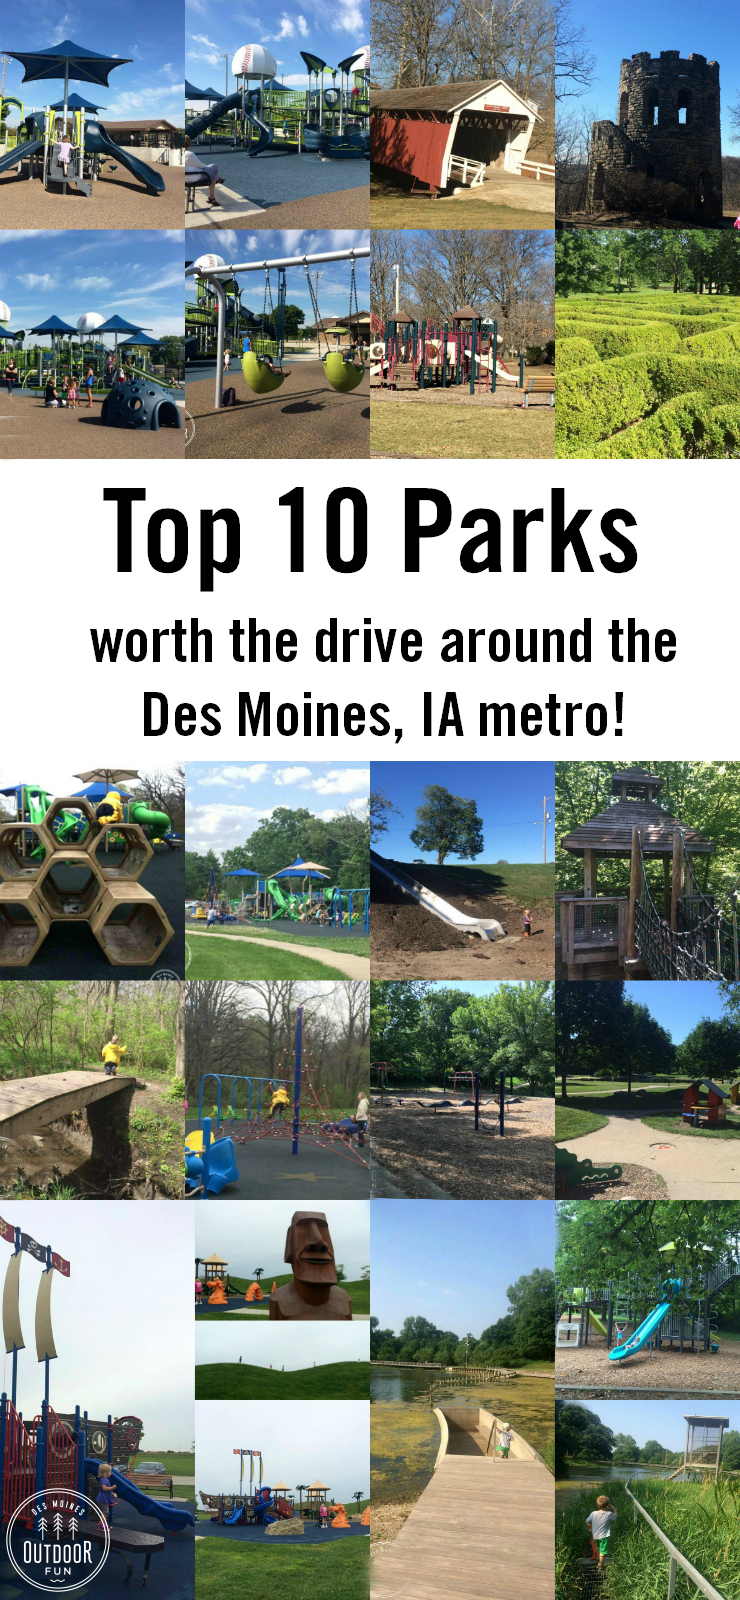 A list of the top 10 parks that are worth a 30-45 minute drive, around the Des Moines, Iowa metro. Unique playground elements, cool structures nearby, and themed parks.